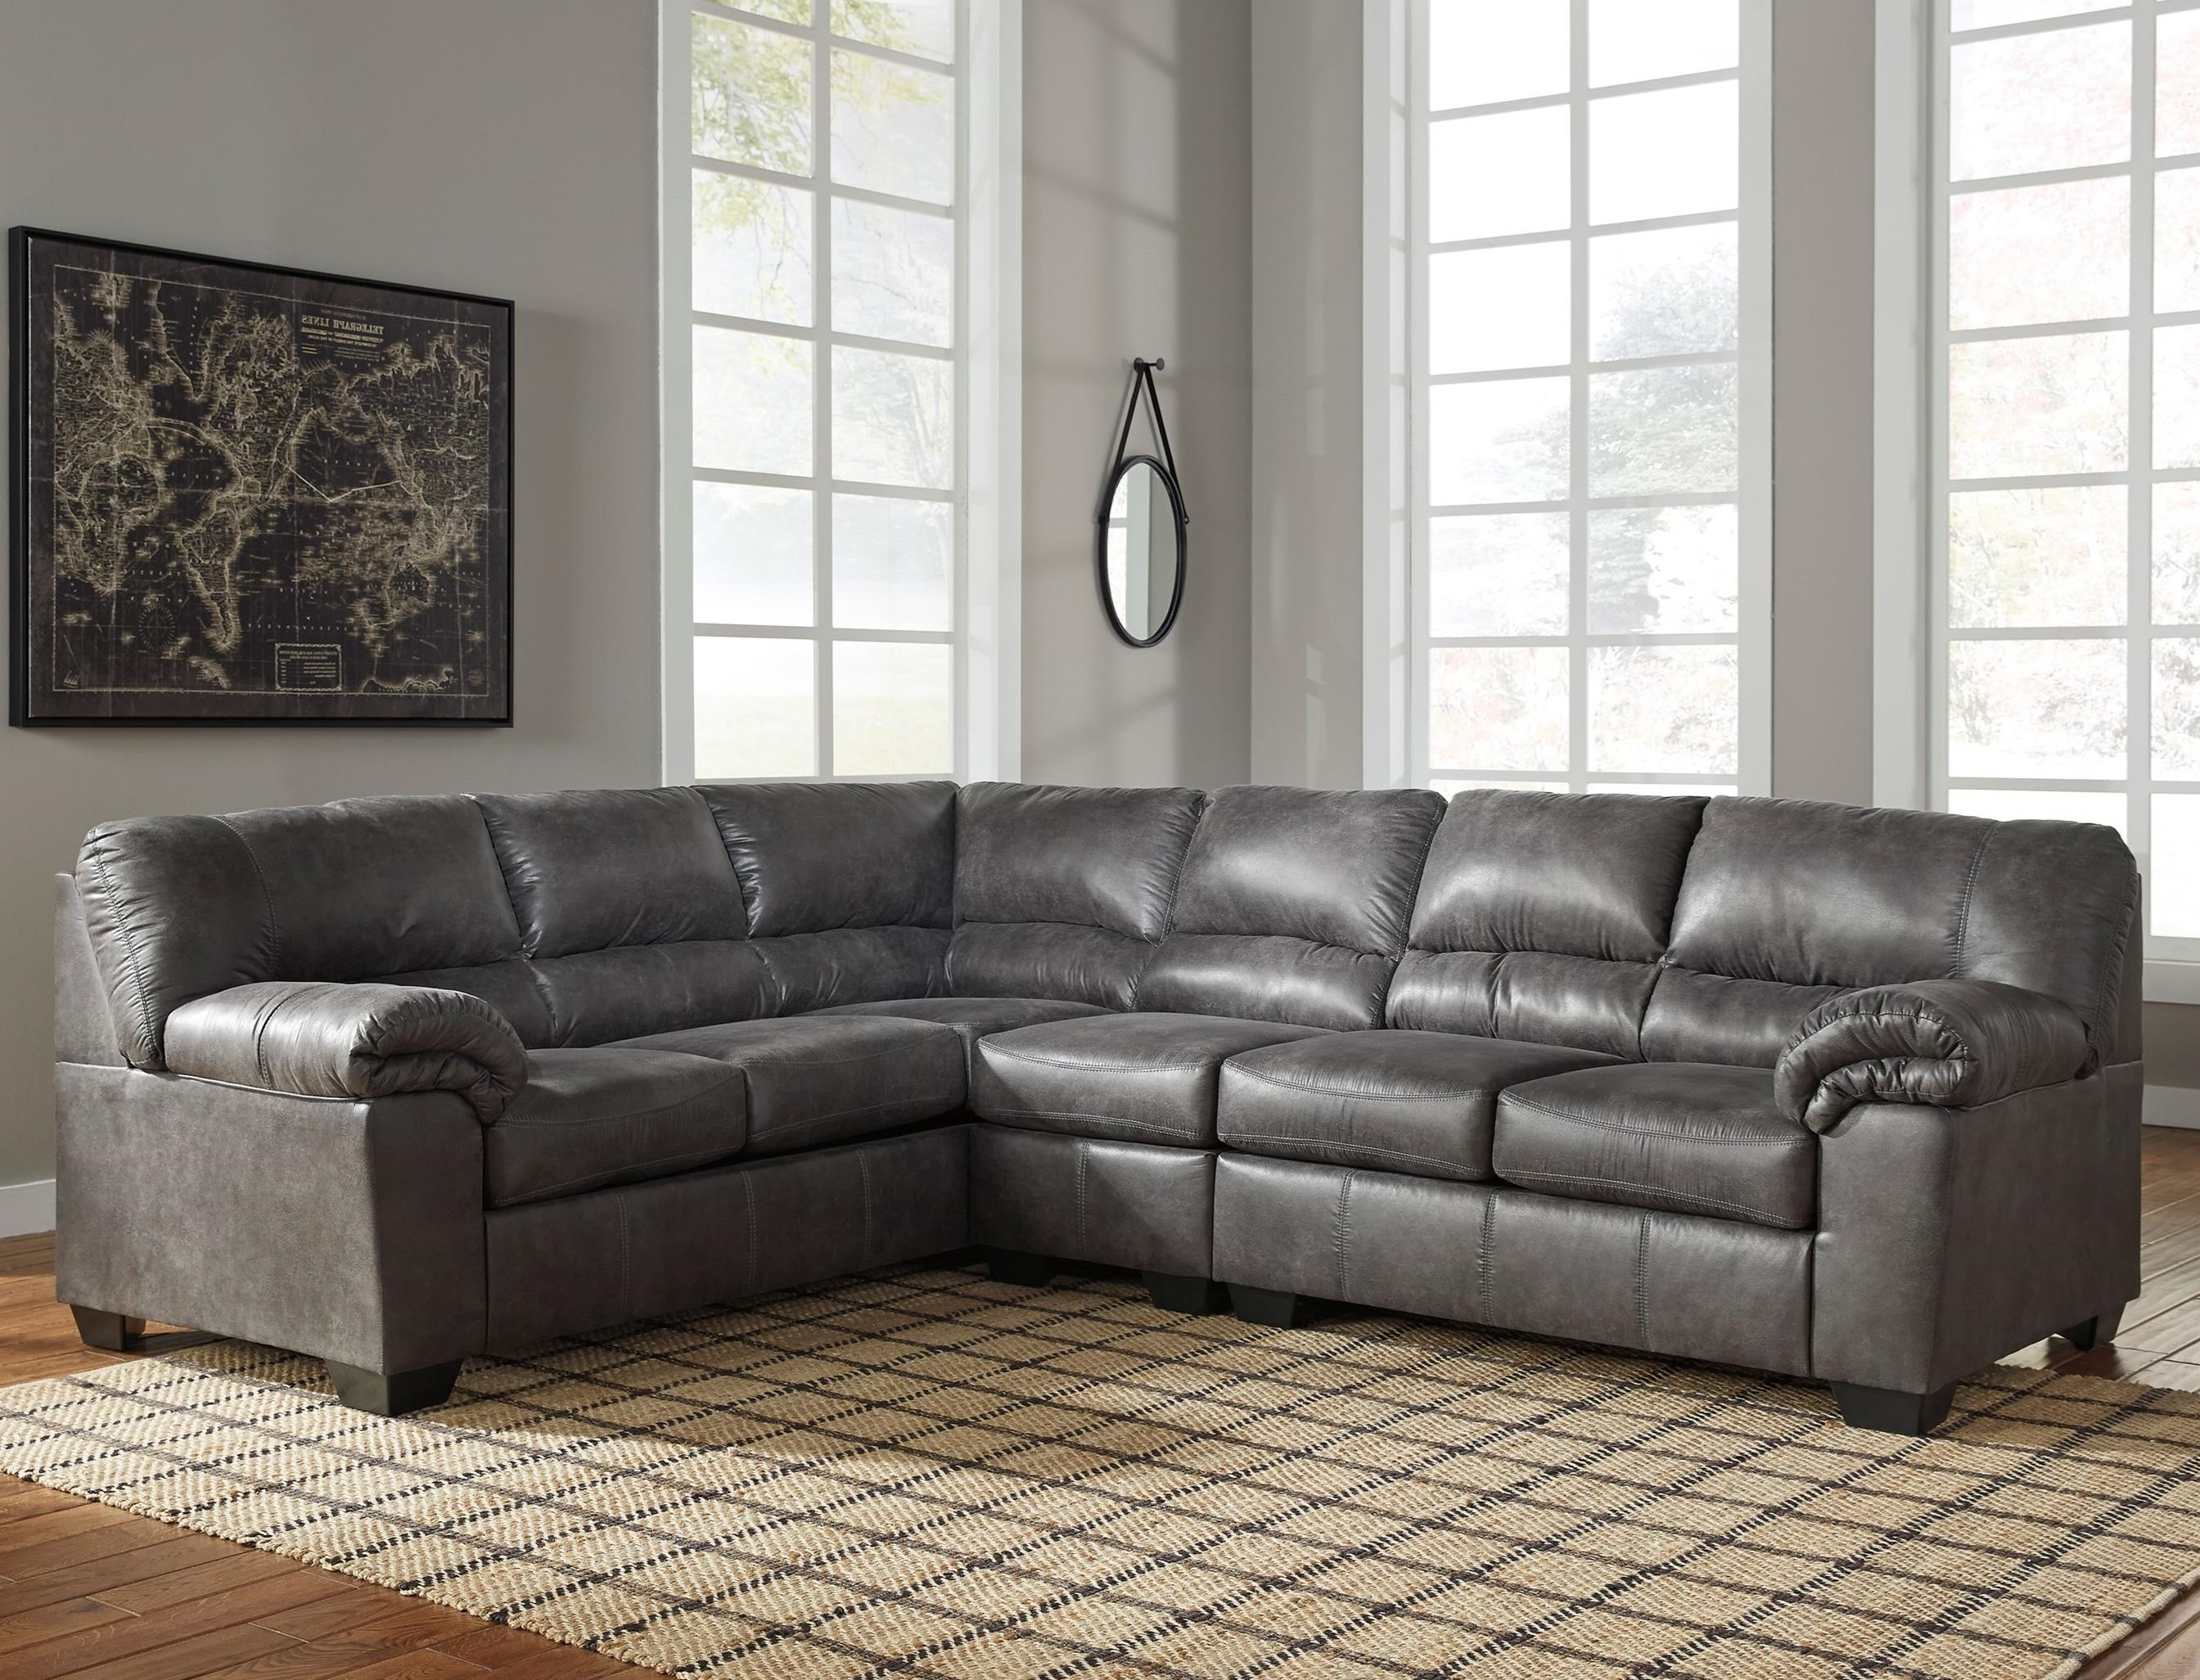 Signature Design By Ashley Bladen 3 Piece Faux Leather